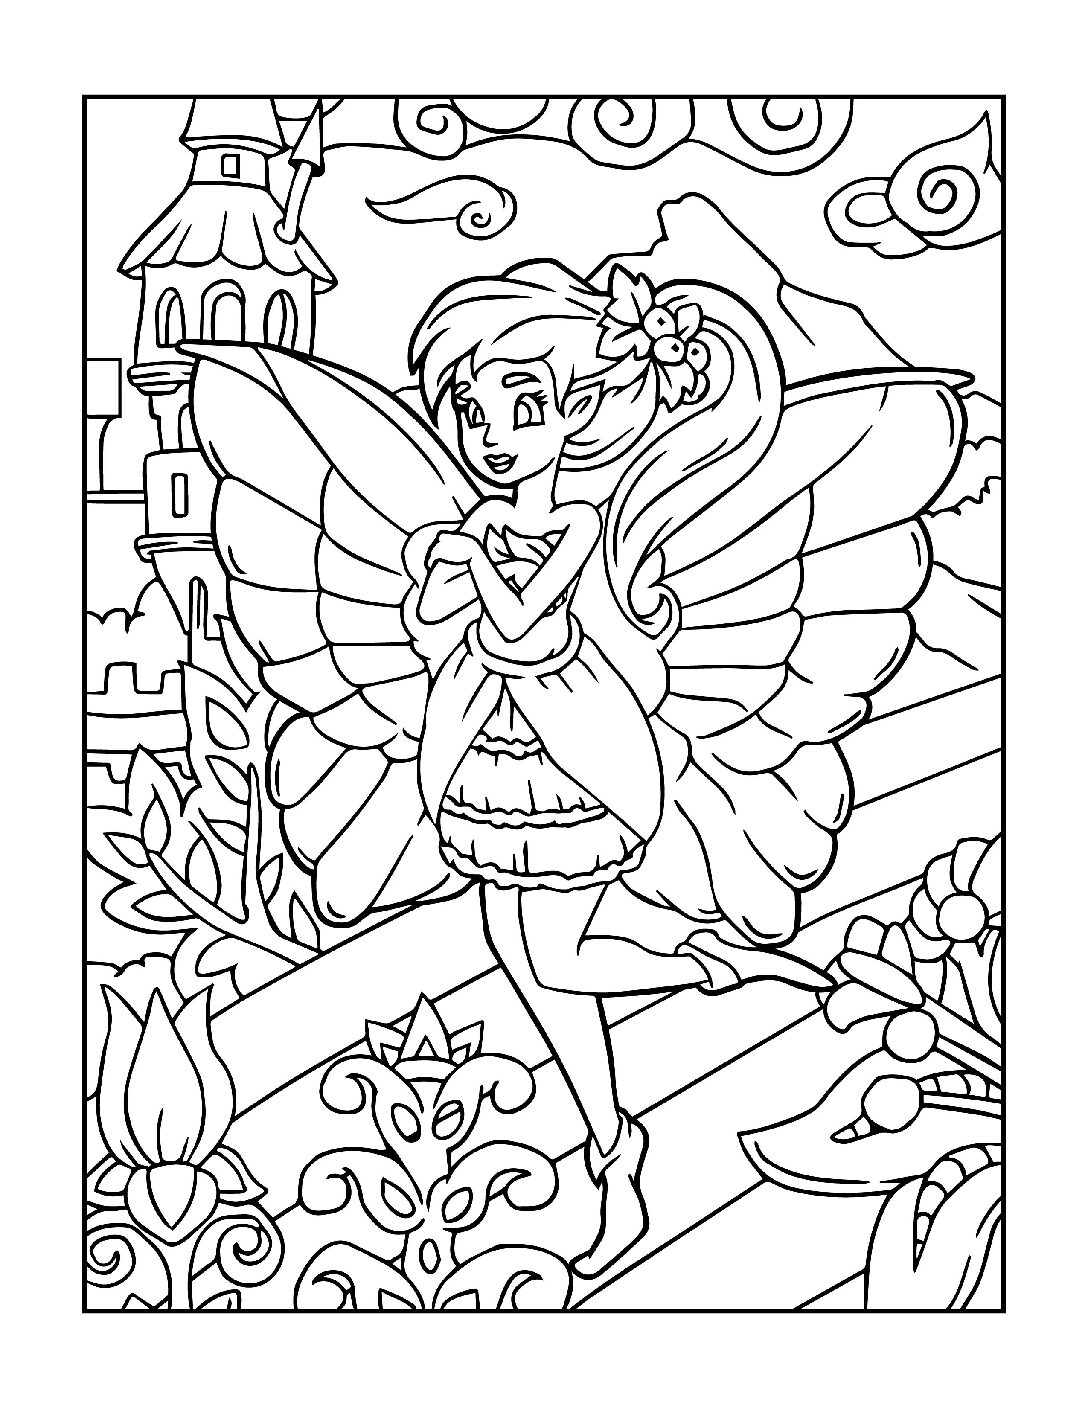 Coloring-Pages-Fairies-1-01-pdf Free Printable Fairy Colouring Pages